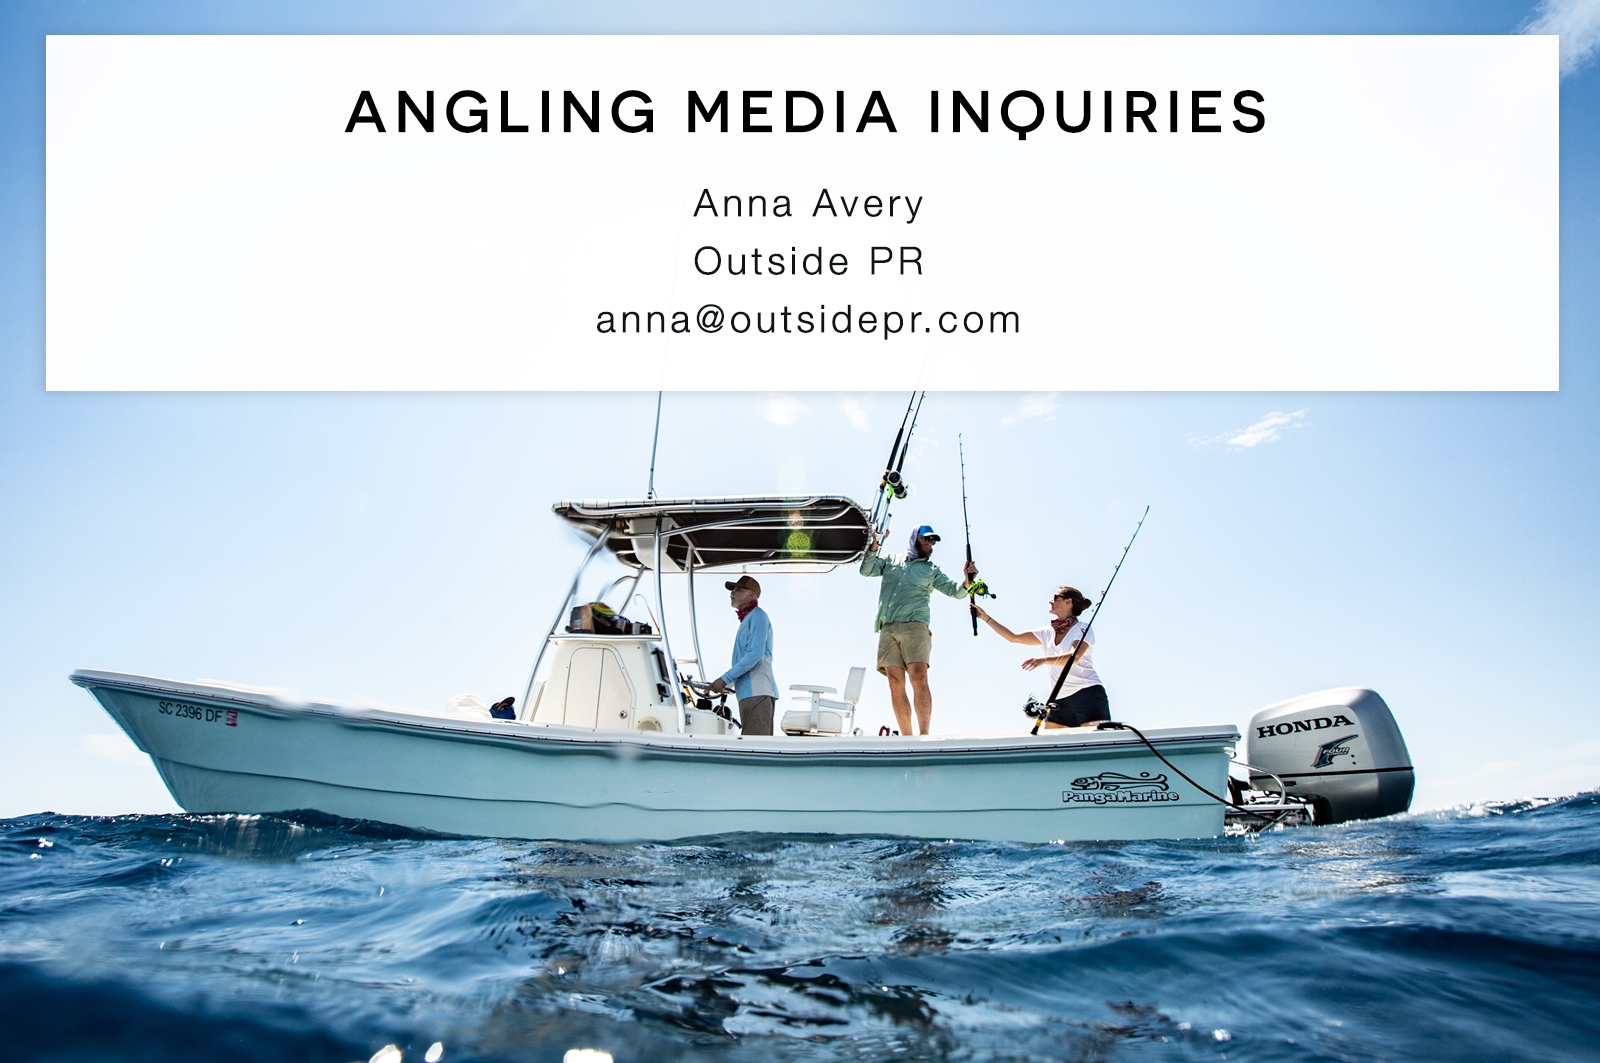 angling media inquiries, contact anna@outsidepr.com